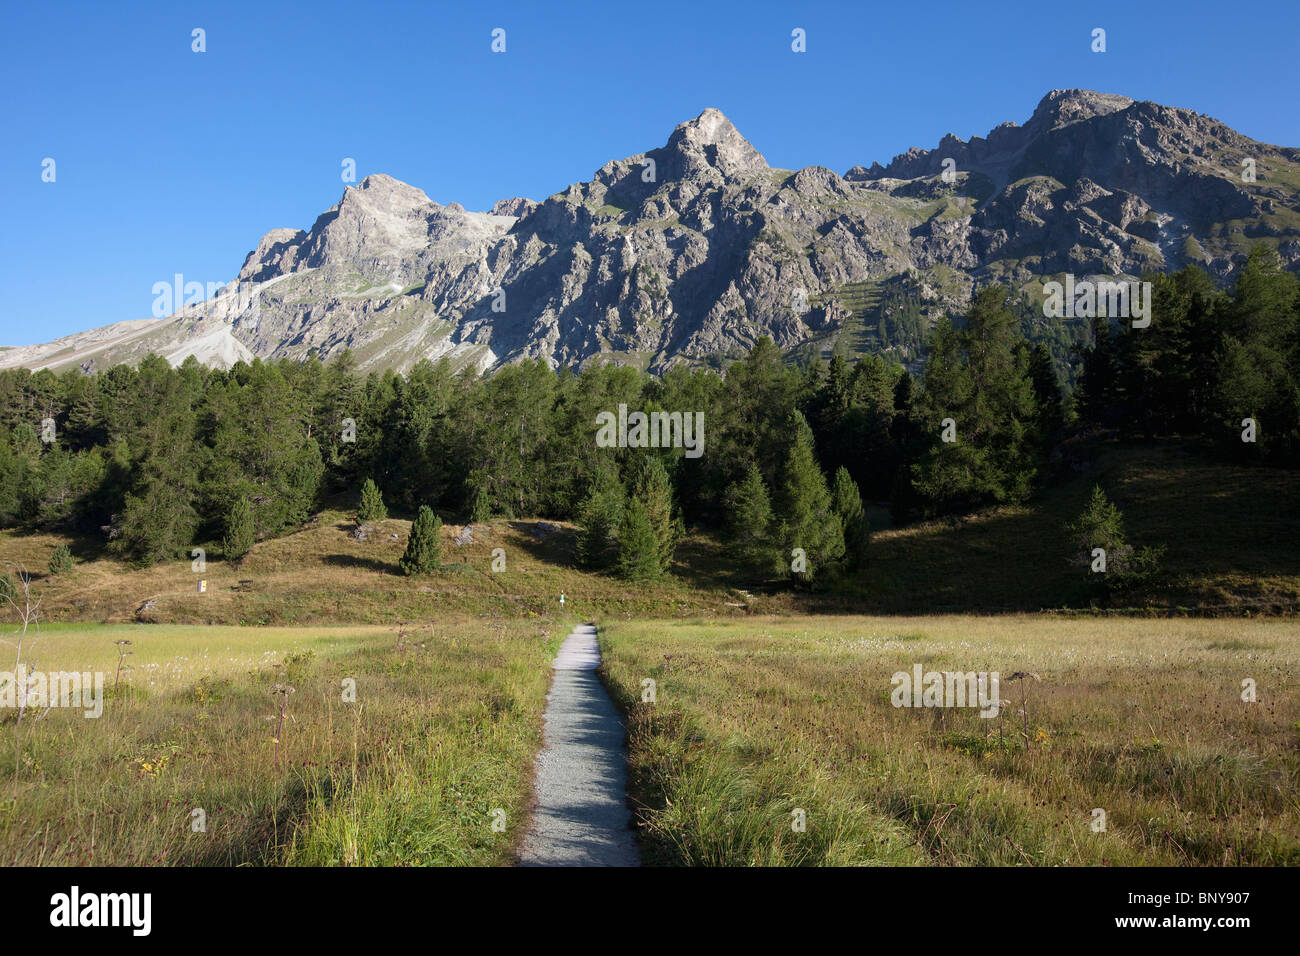 Small path heading into mountain forest - Stock Image